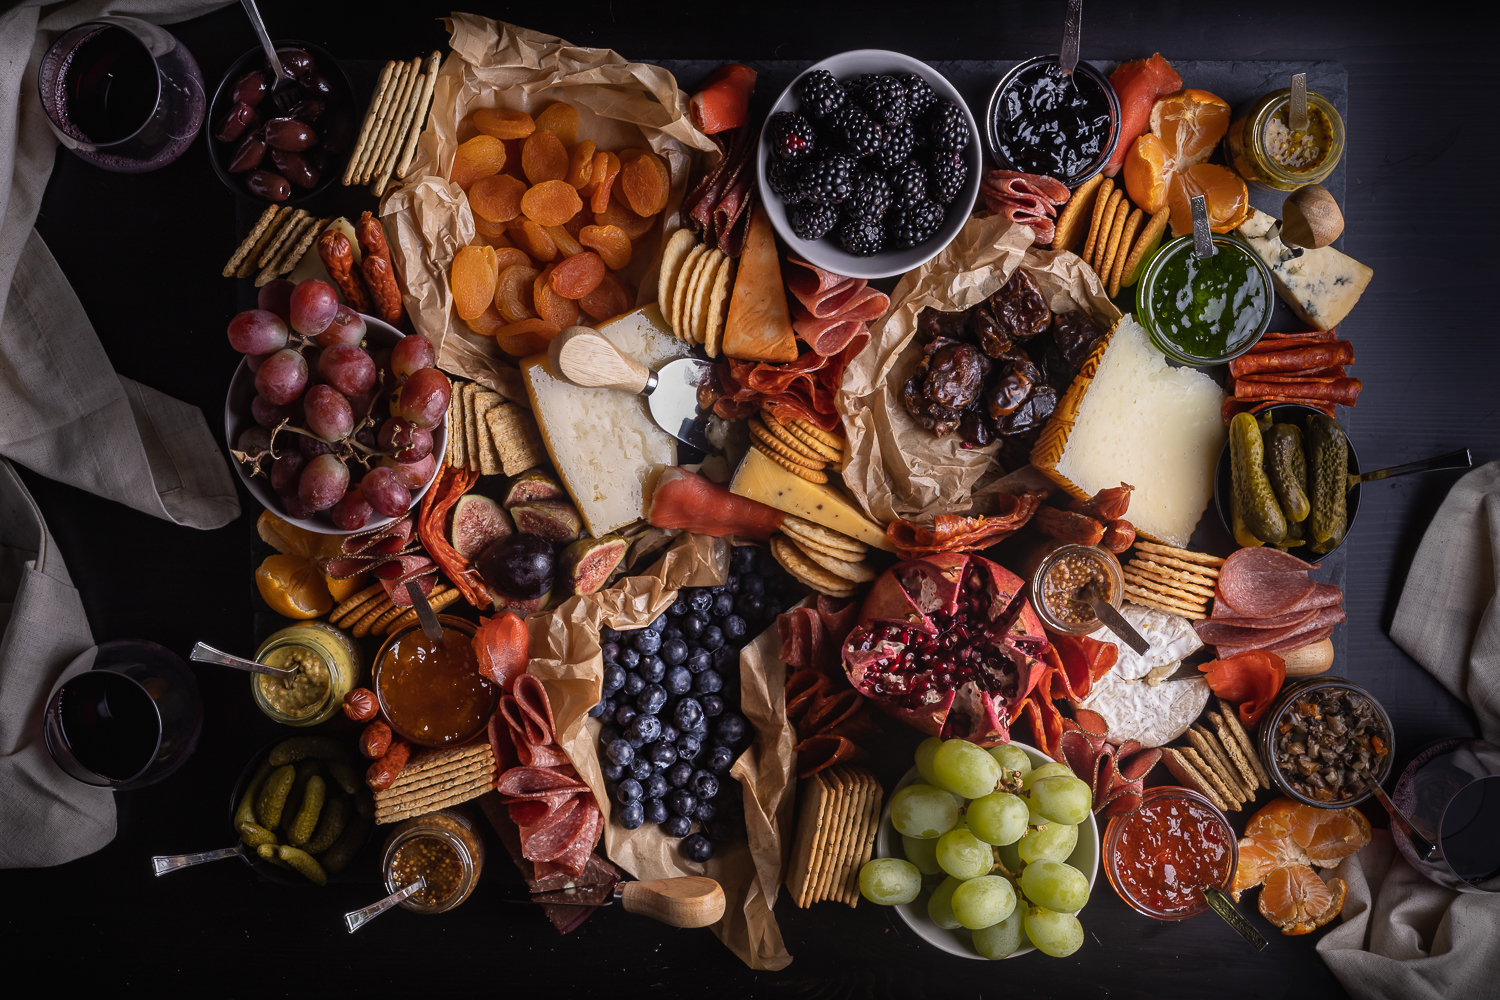 charcuterie board by Jules Sherred with fruits, crackers, meats, cheeses, pickles, and jams.